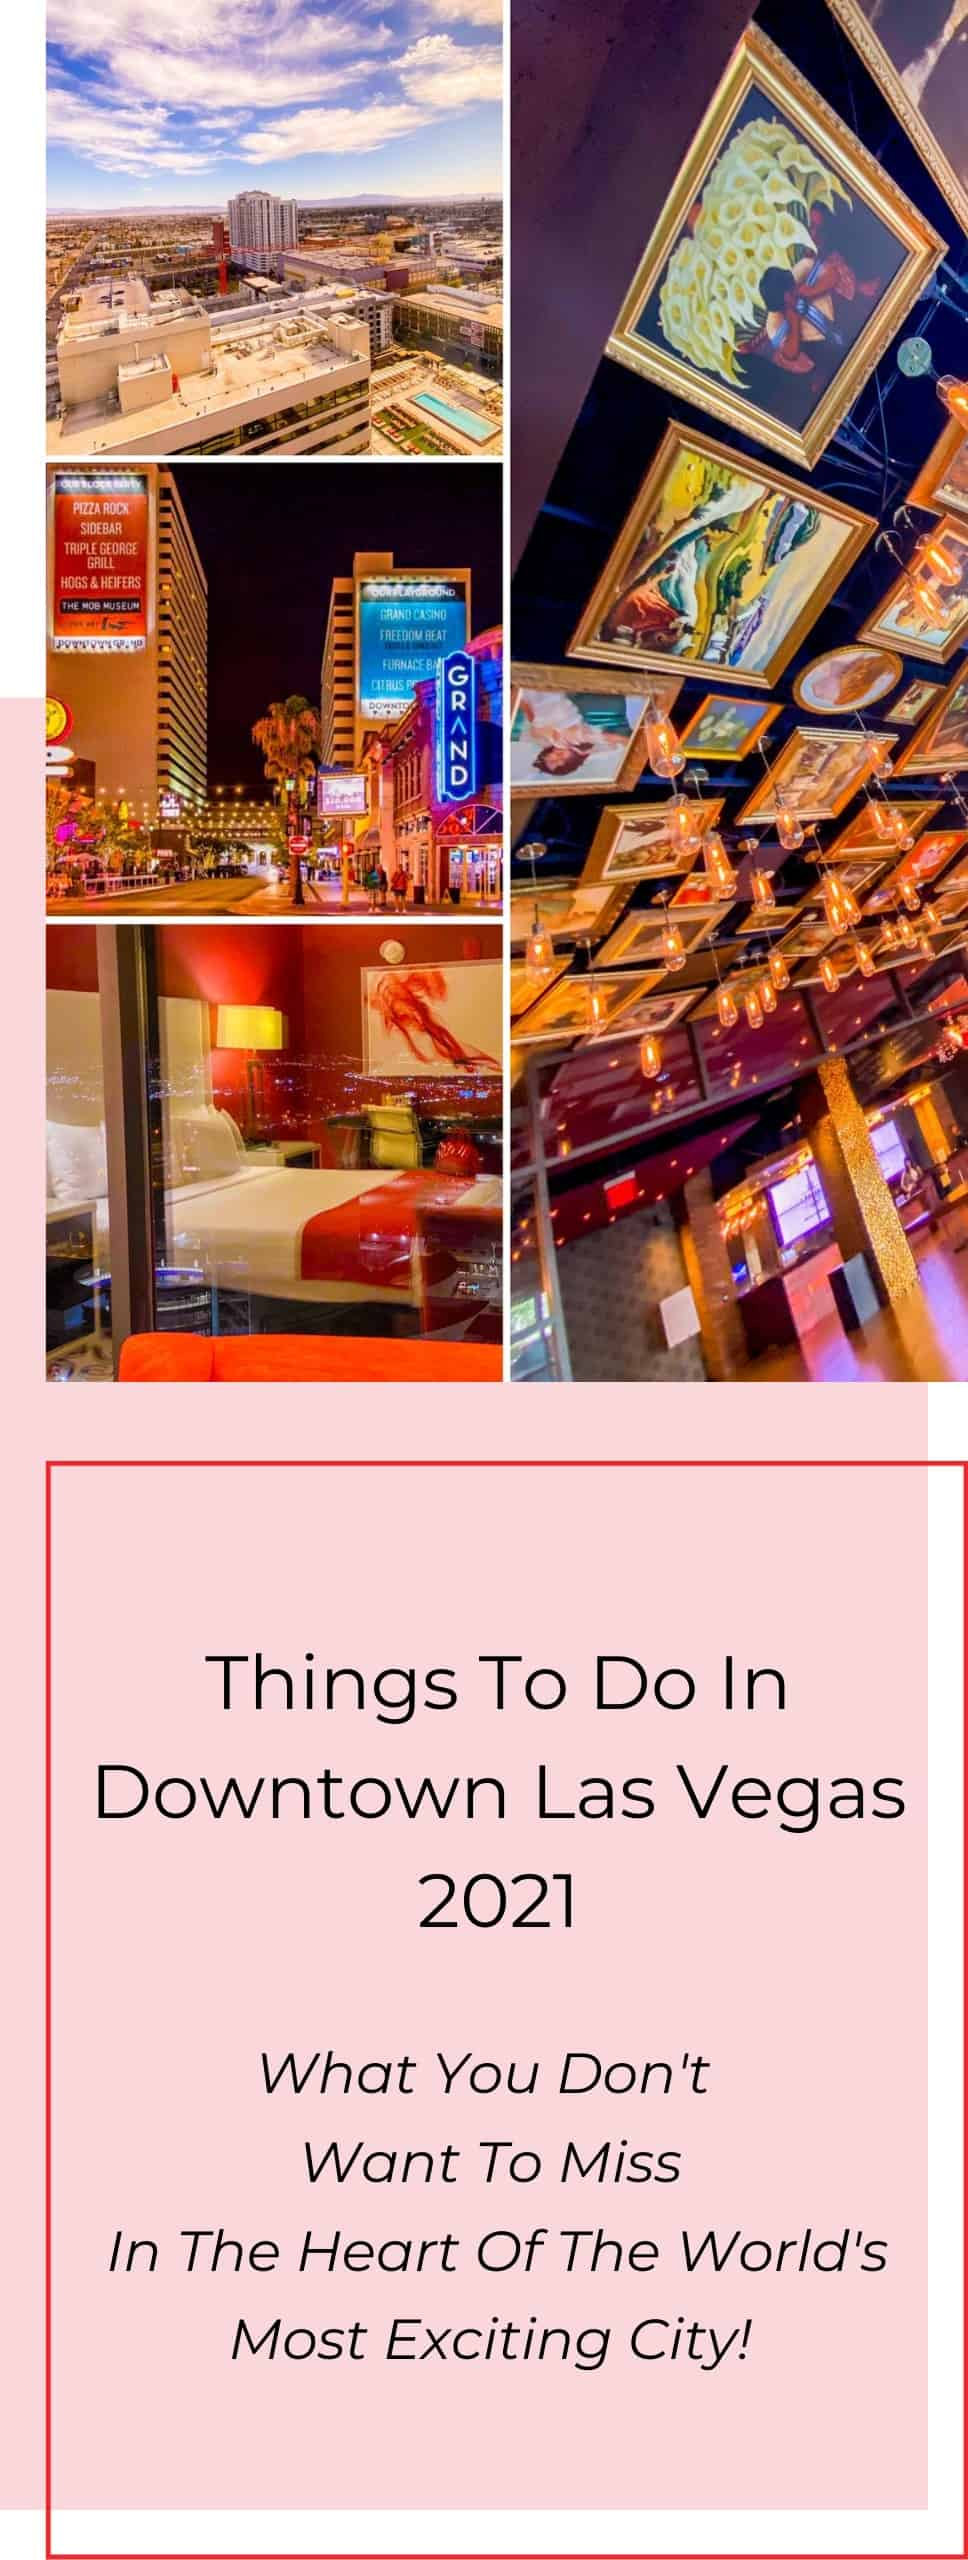 Top Things To Do In Downtown Las Vegas Travel Guide 2021